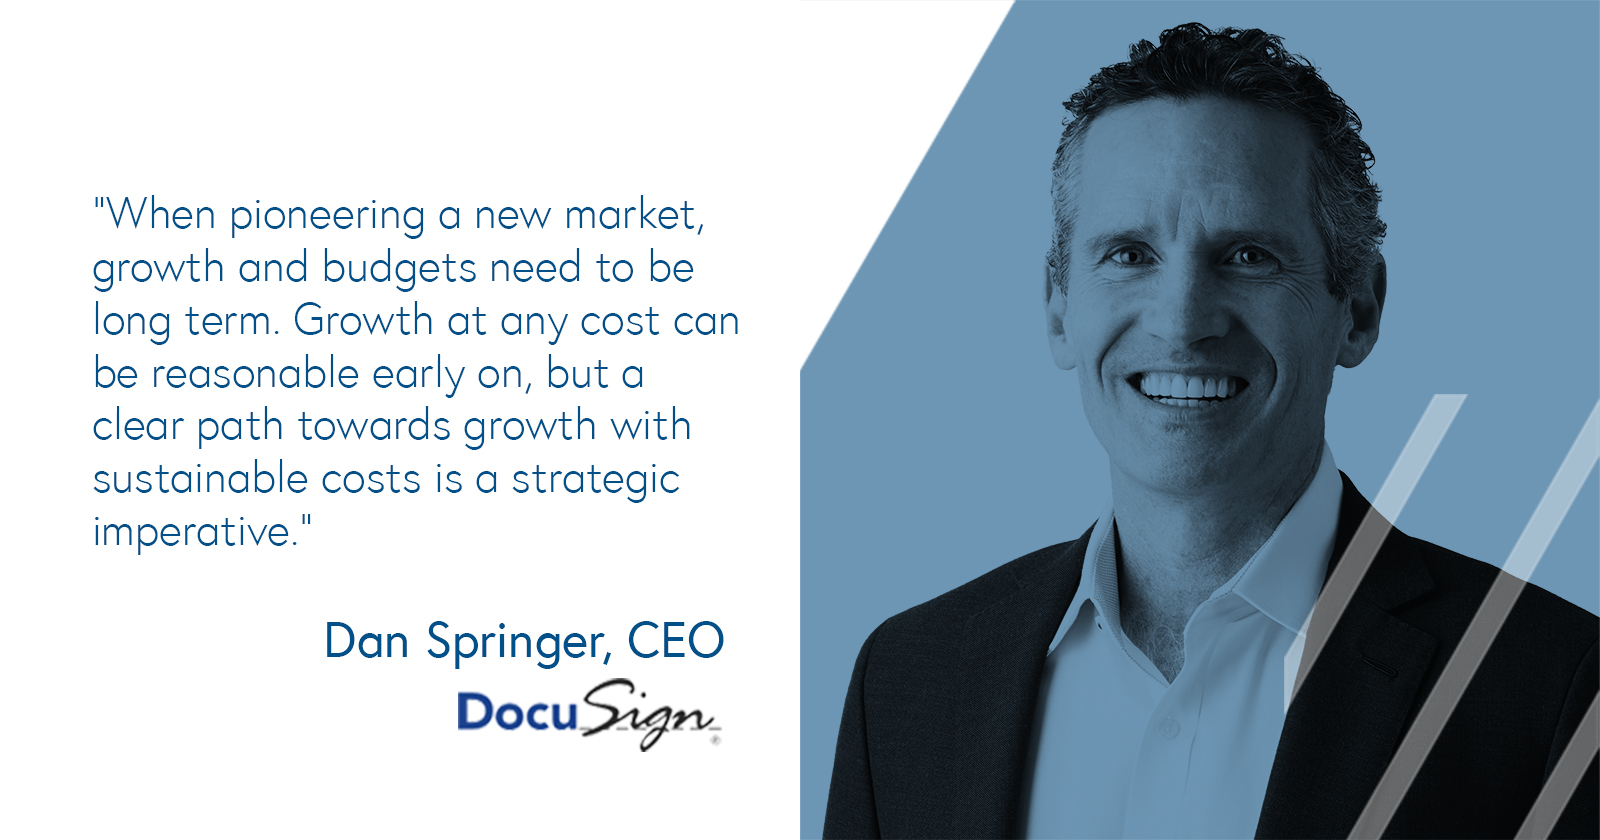 Sustainable business growth according to Dan Springer, CEO of DocuSign